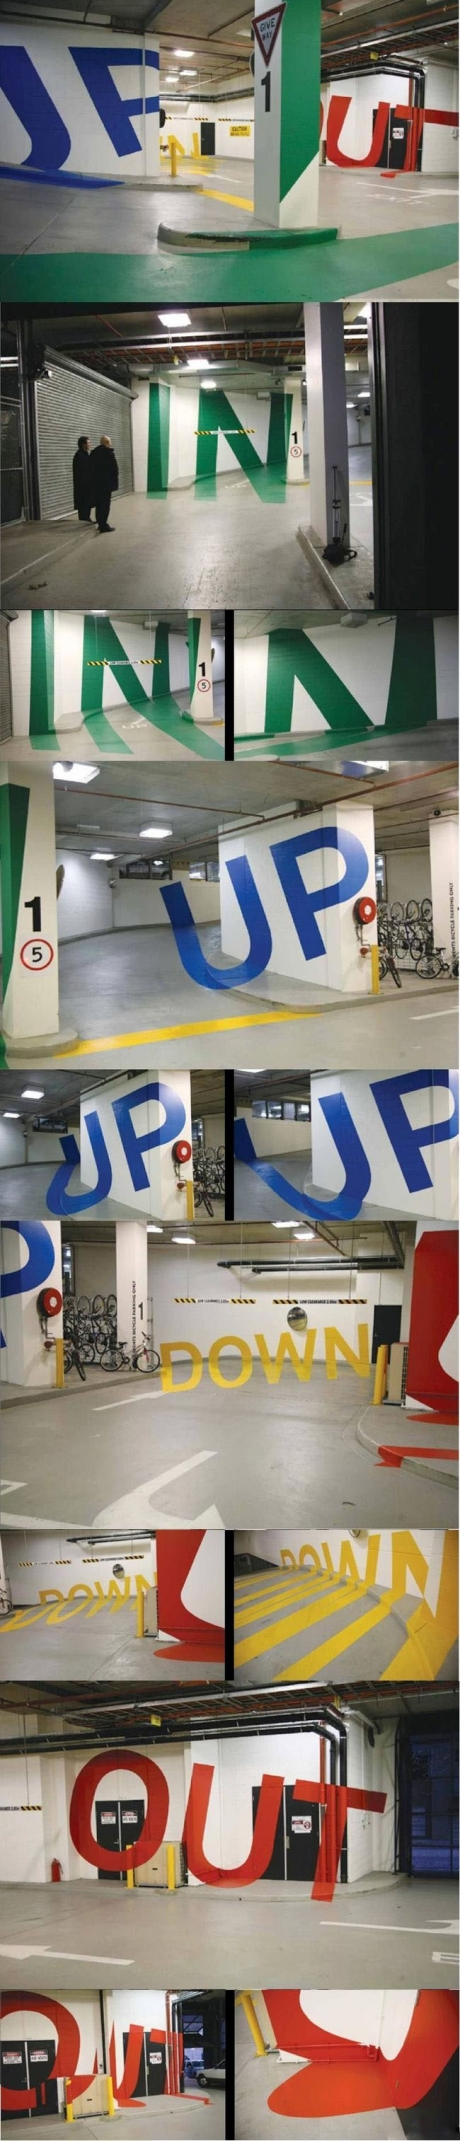 Epic Parking Garage, up, out